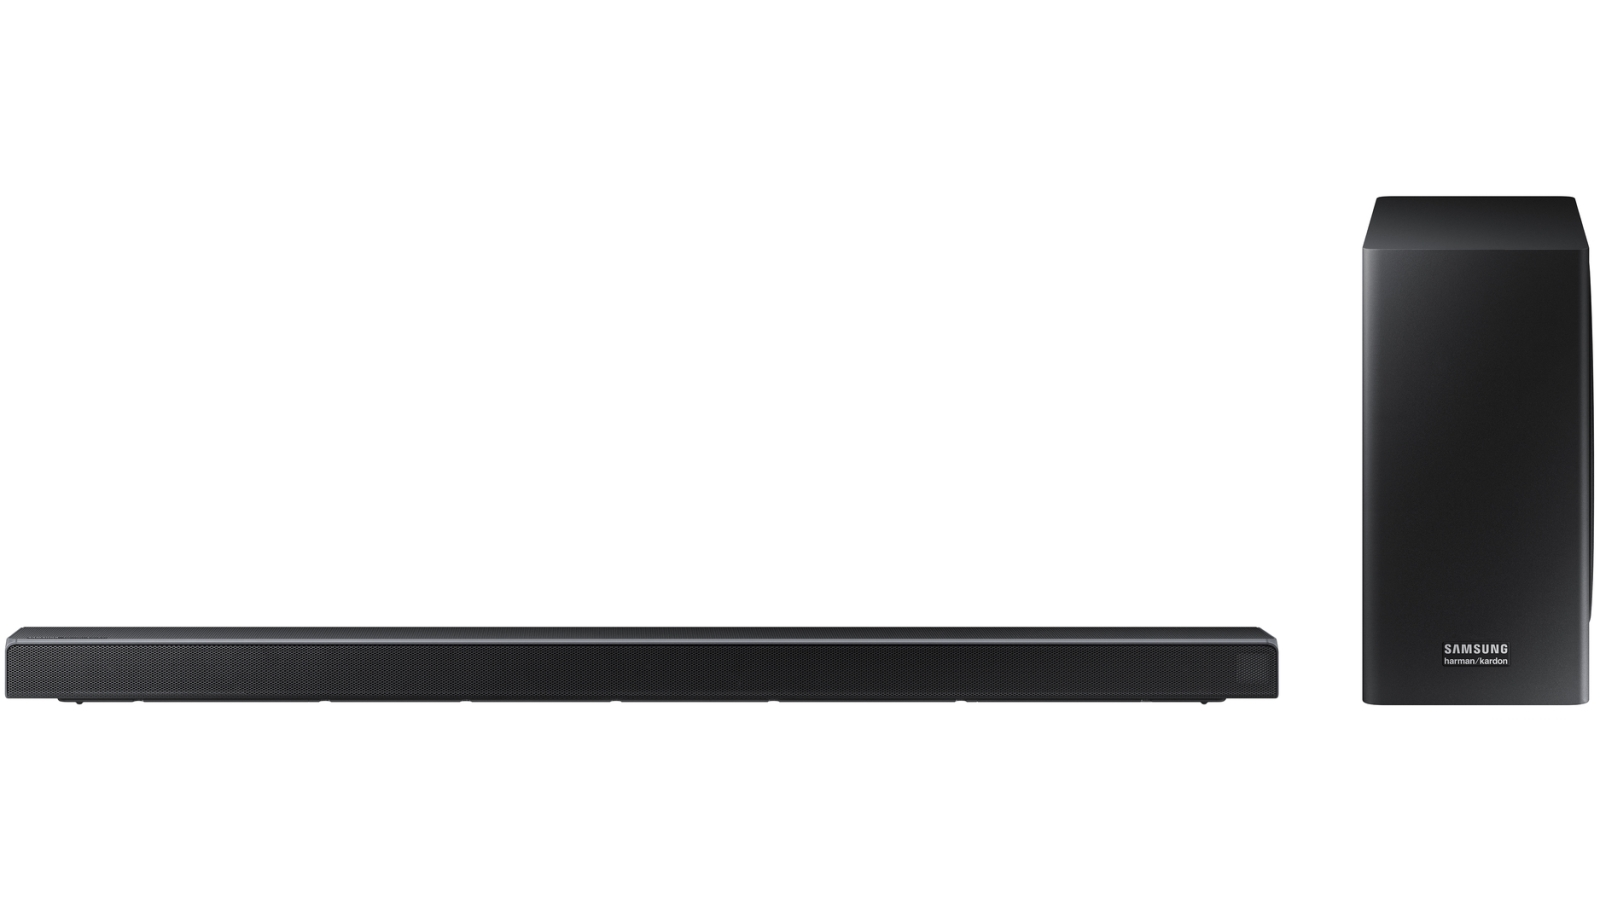 Samsung Q70 3 1 2 Channel Soundbar with Dolby Atmos, DTS:X and Wireless  Subwoofer